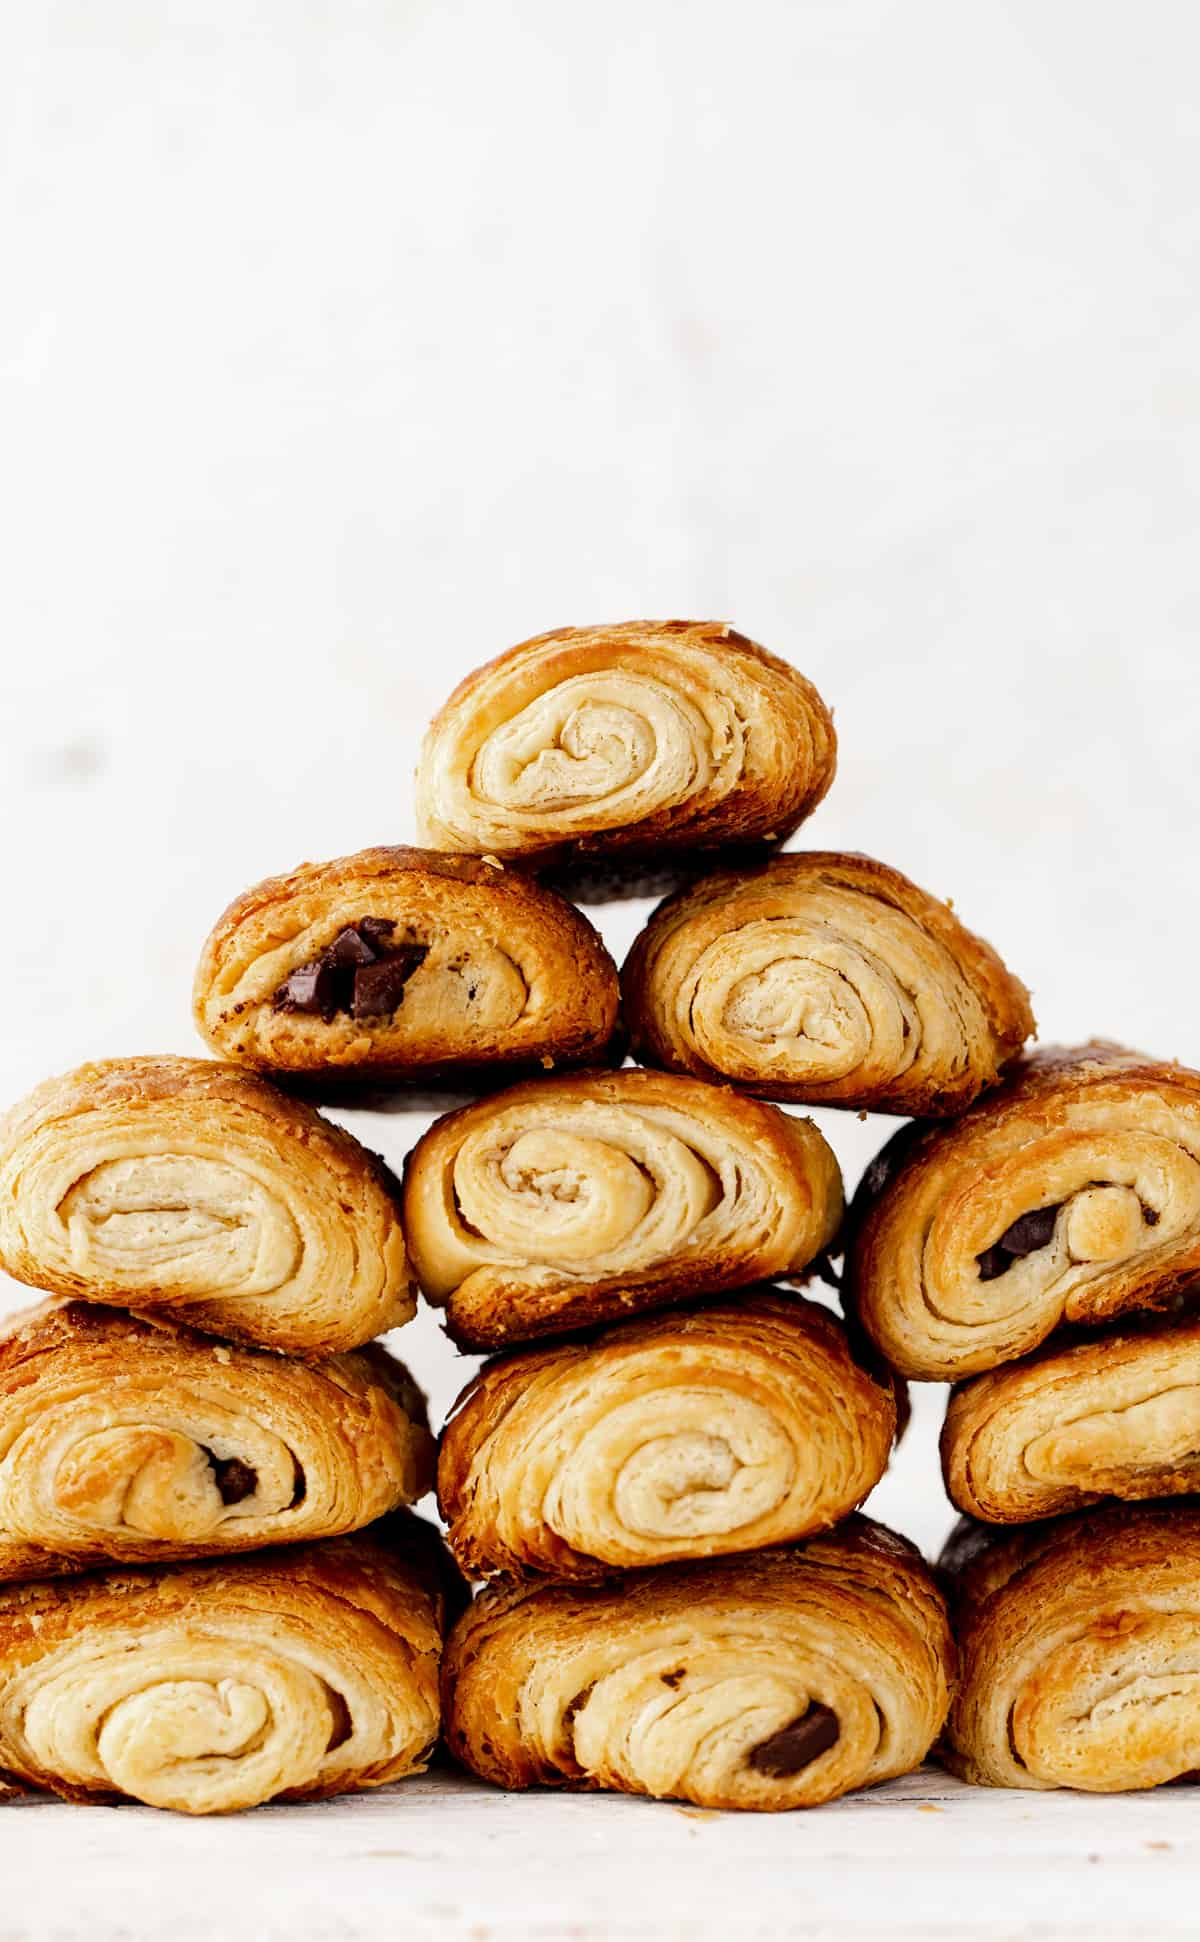 Chocolate Croissants, or pain au chocolat in French, are a special treat to start making with your family as a holiday tradition over the holidays and a delicious make ahead idea for breakfast any time of year! chocolate croissant recipe   how to make chocolate croissants   christmas traditions   cooking with kids   make ahead christmas breakfast #ado